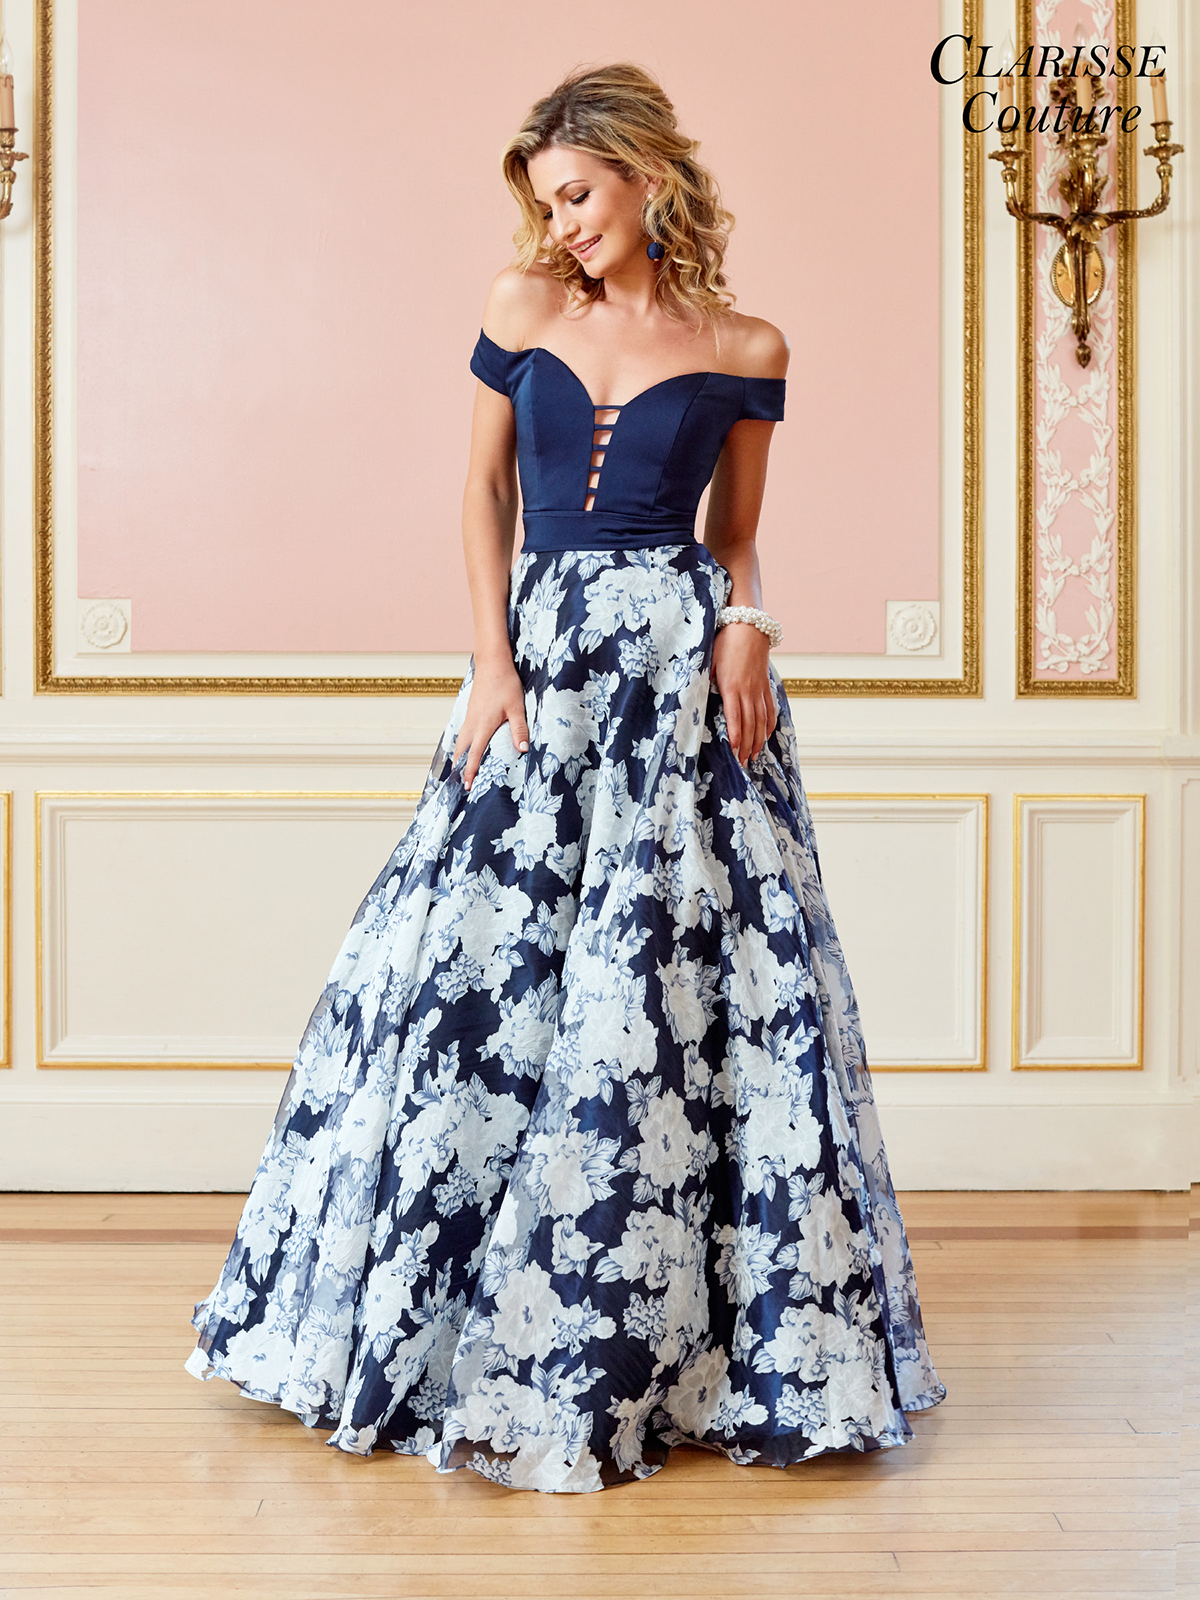 e42b2915e7633 2018 Prom Dress Clarisse 4966 | Promgirl.net